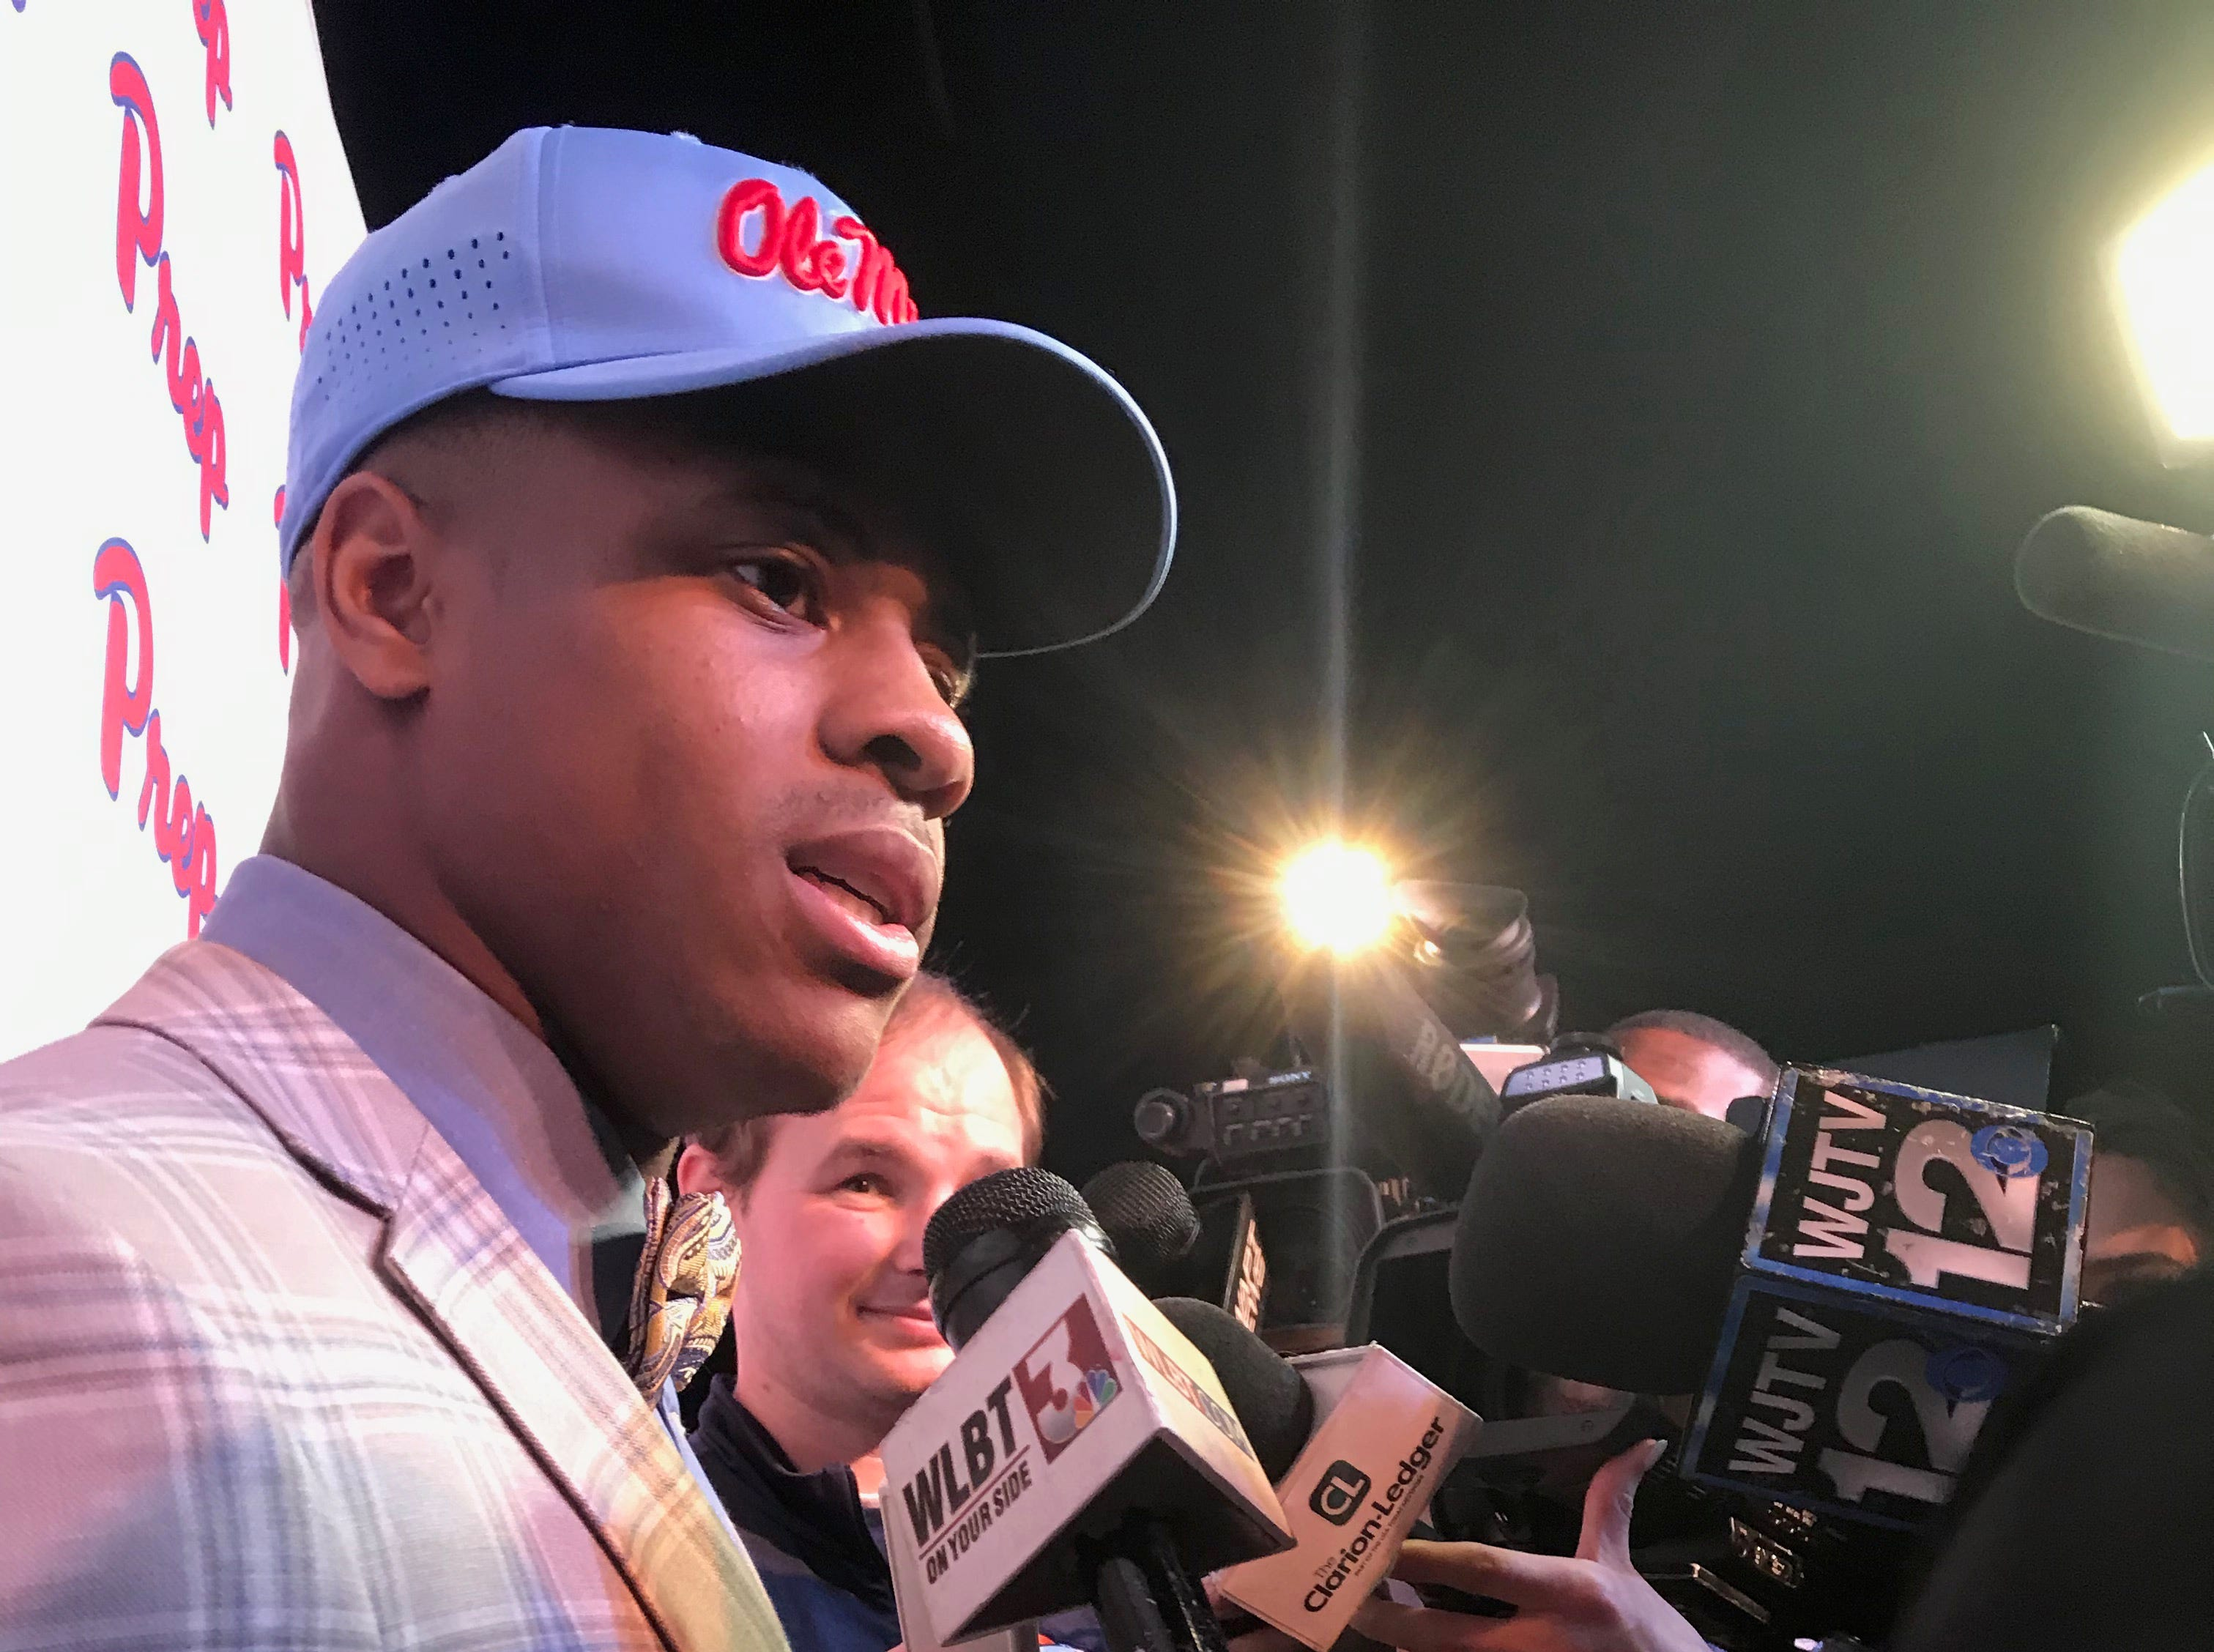 Jackson Prep 5-star running back and two-sport standout Jerrion Ealy signed with Ole Miss on Wednesday, giving the Rebels a huge recruiting boost. Wednesday, Feb, 6, 2019.